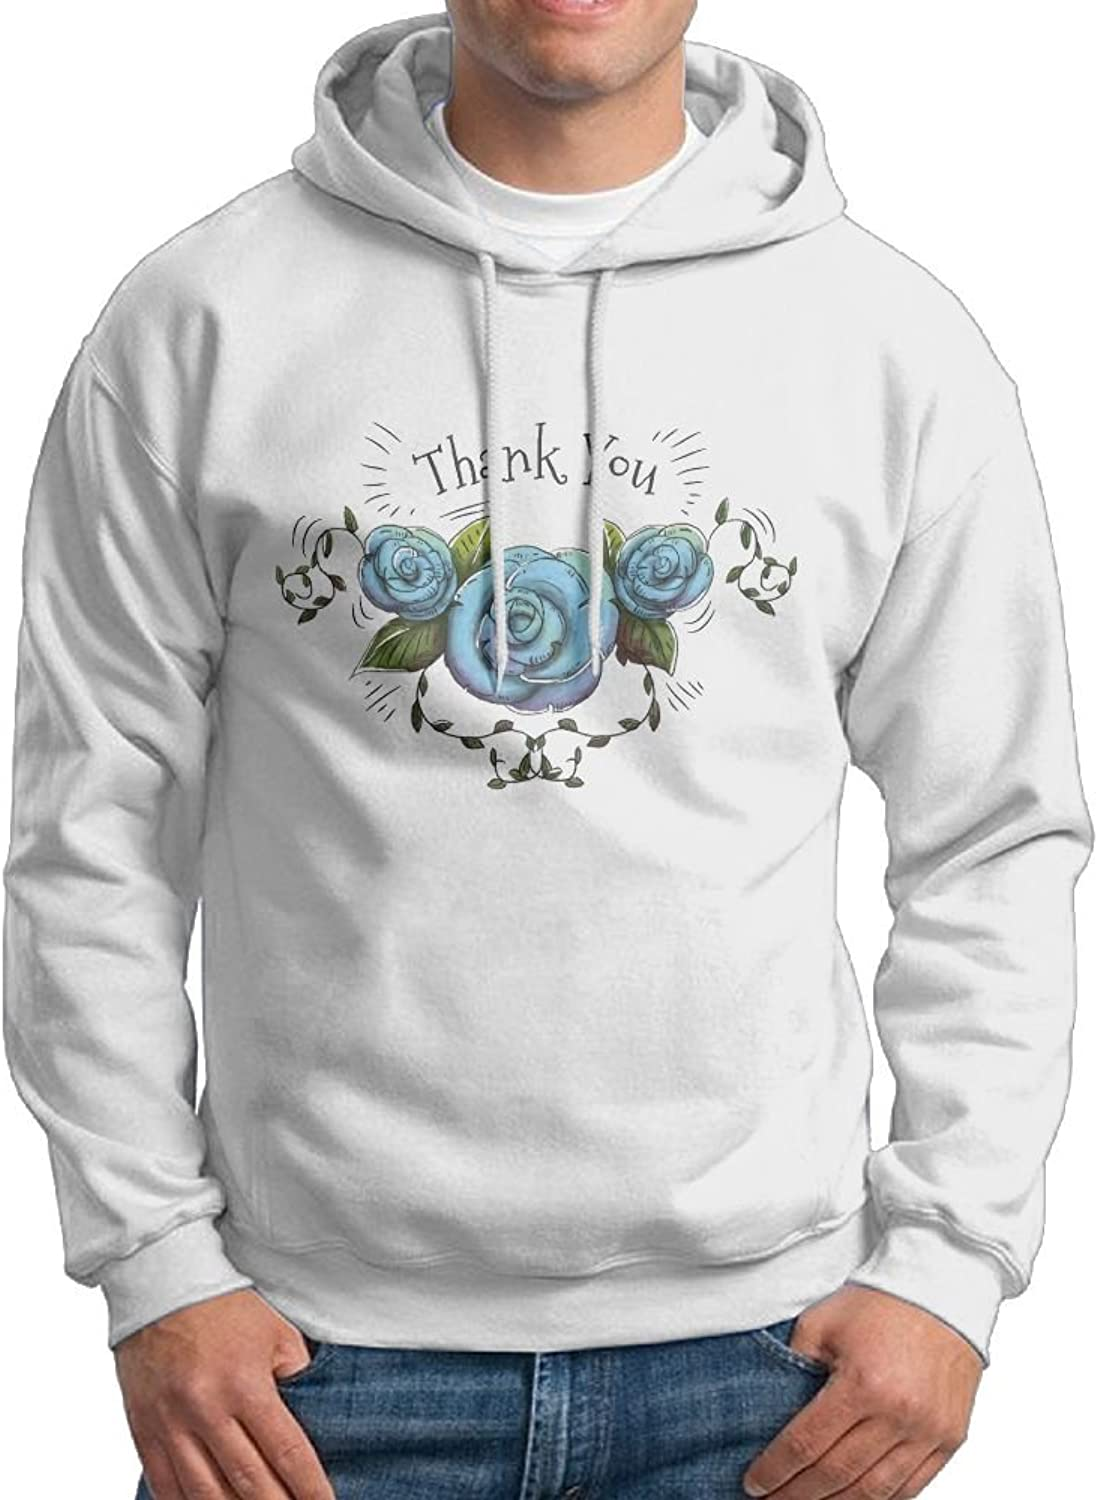 Fashion Men's Athletic Thank You blueee pink Print Soft & Cozy Drawstring Hoodie Without Pocket Sweater White